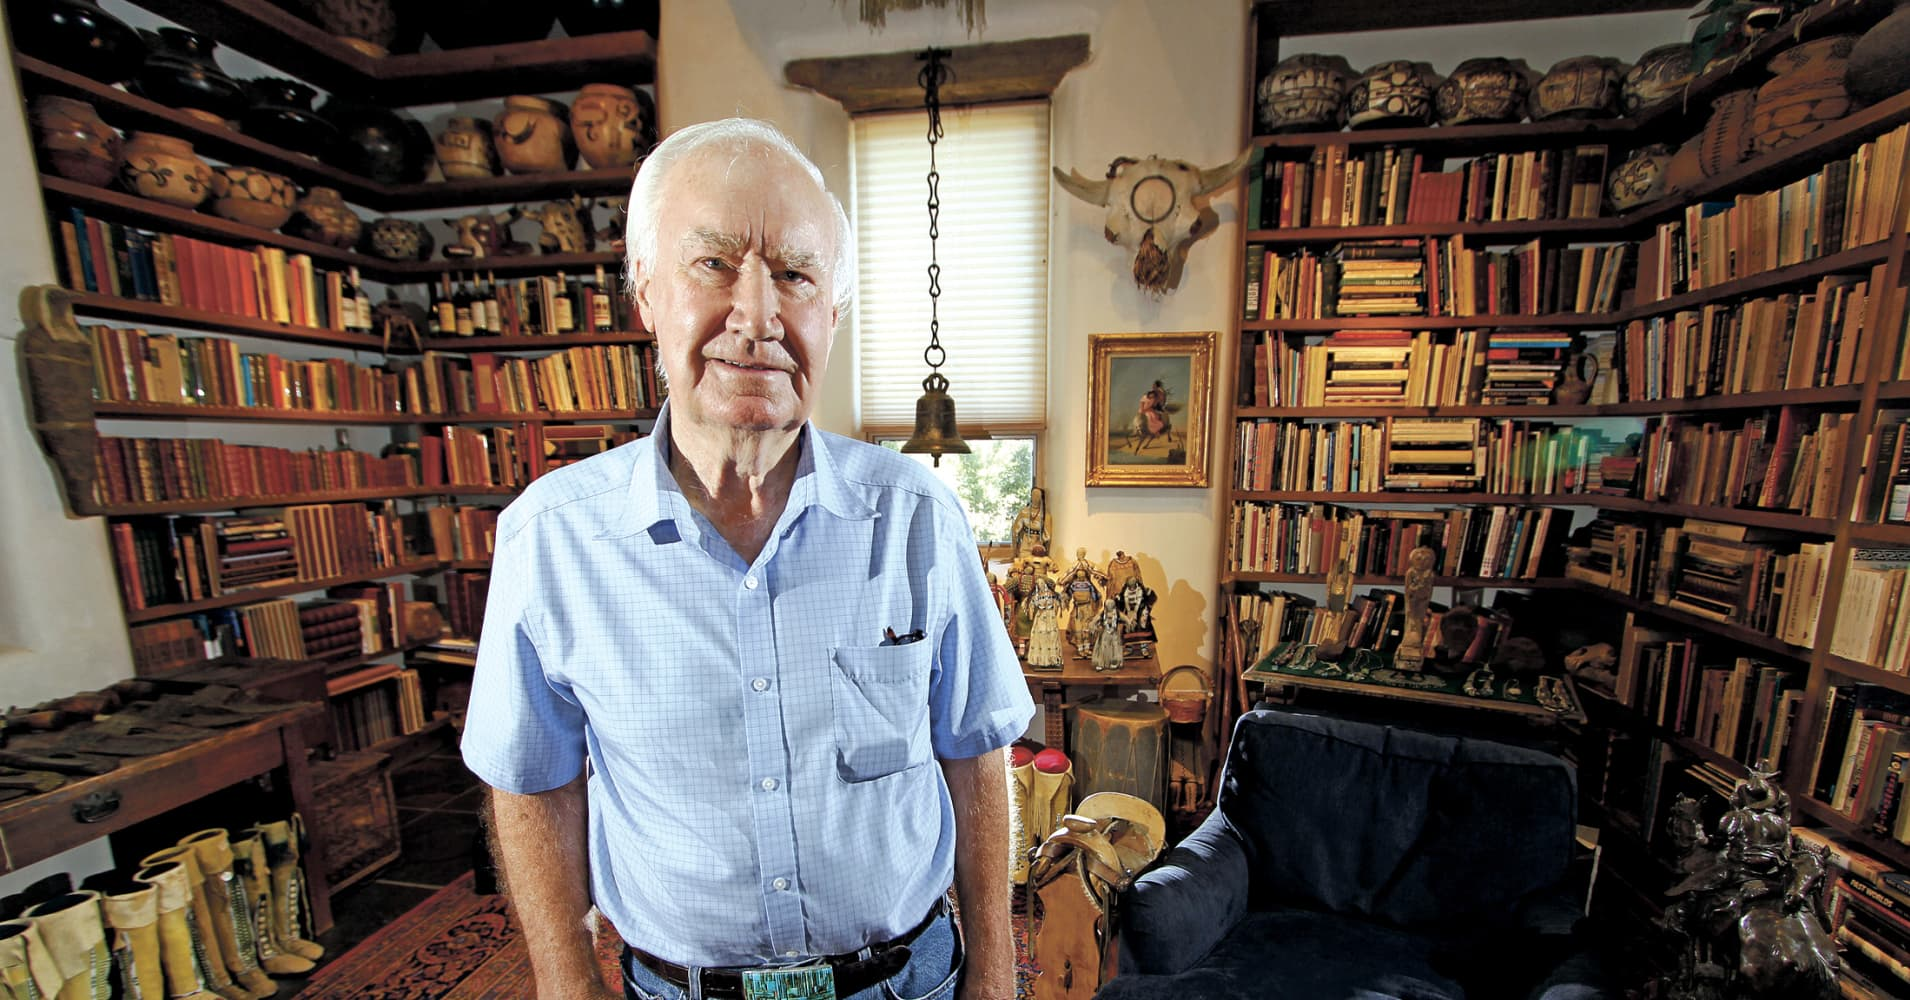 An 87-year-old millionaire buried treasure in the Rockies—and he's offered one main clue